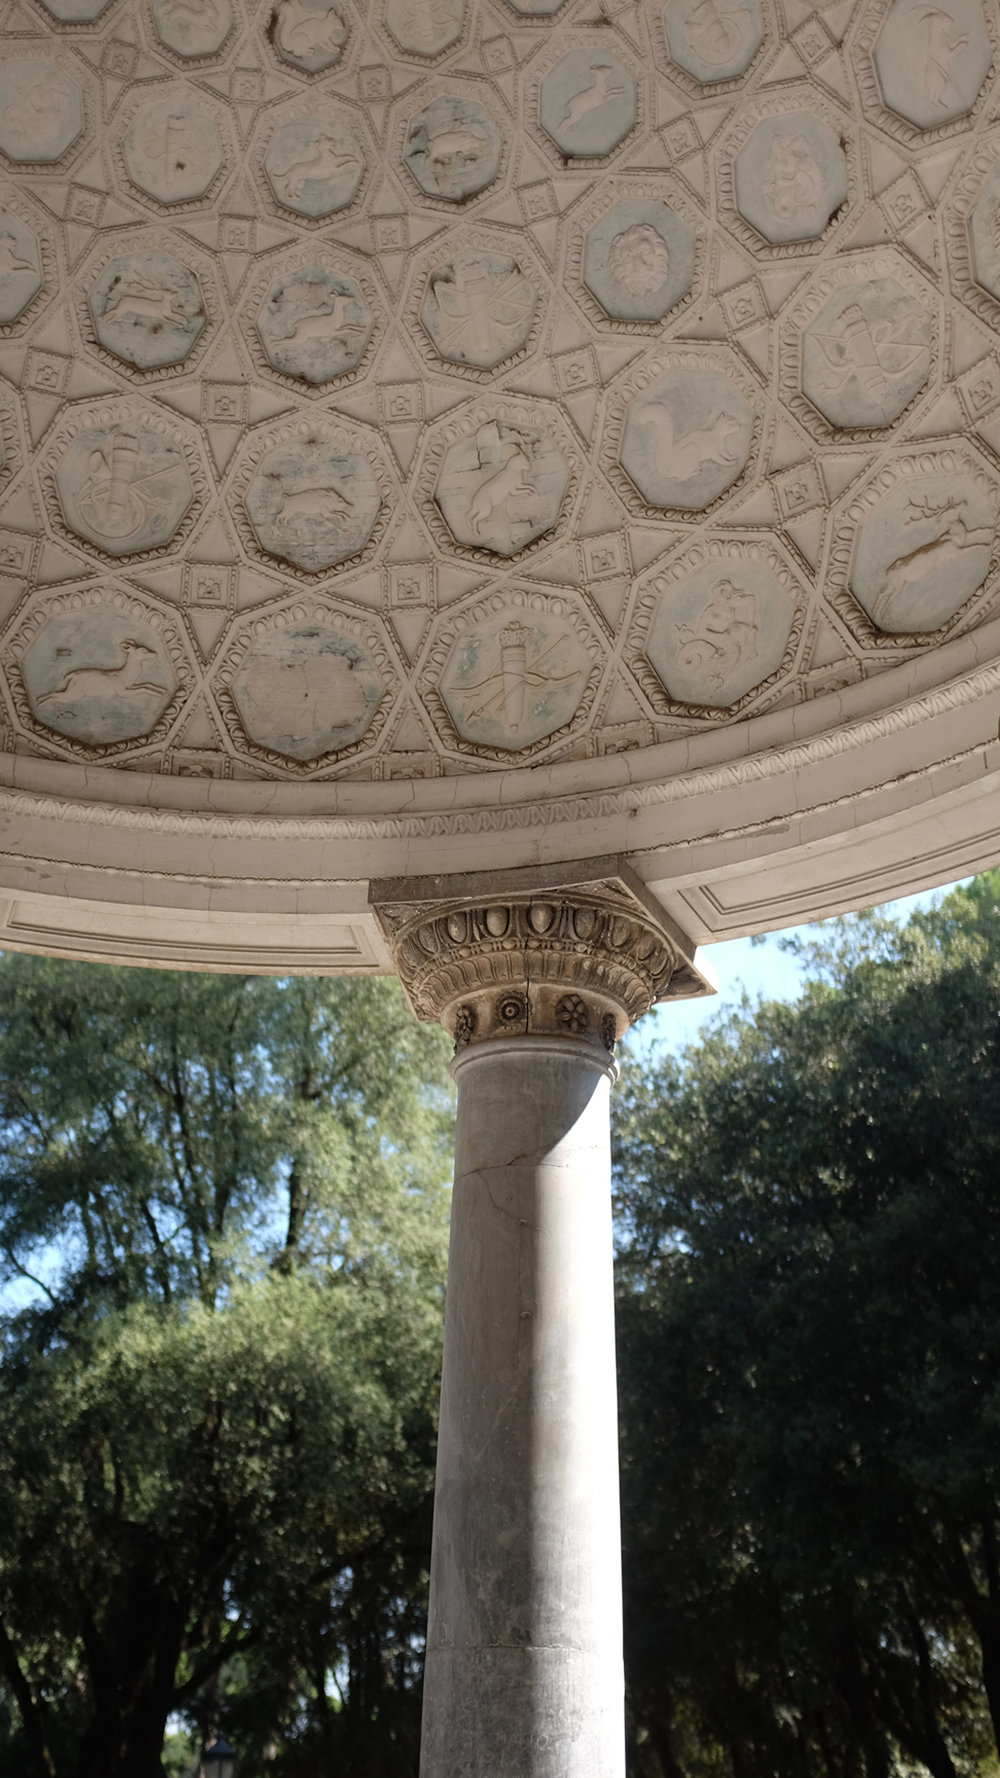 One of many monuments in the Villa Borghese.